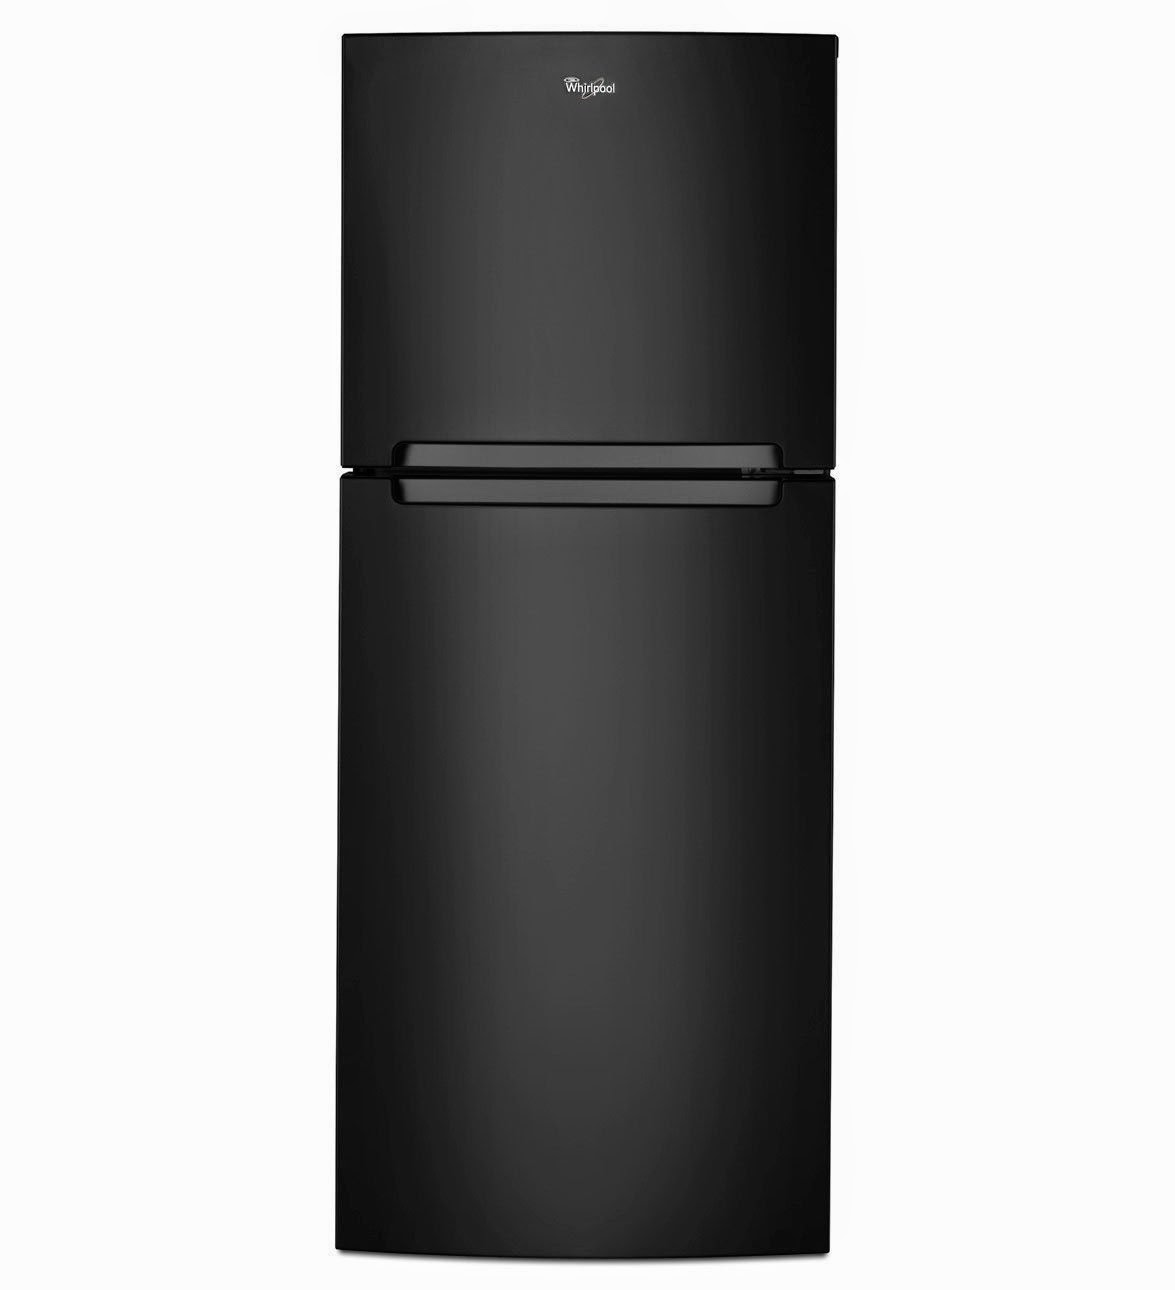 whirlpool refrigerators whirlpool top freezer refrigerators. Black Bedroom Furniture Sets. Home Design Ideas